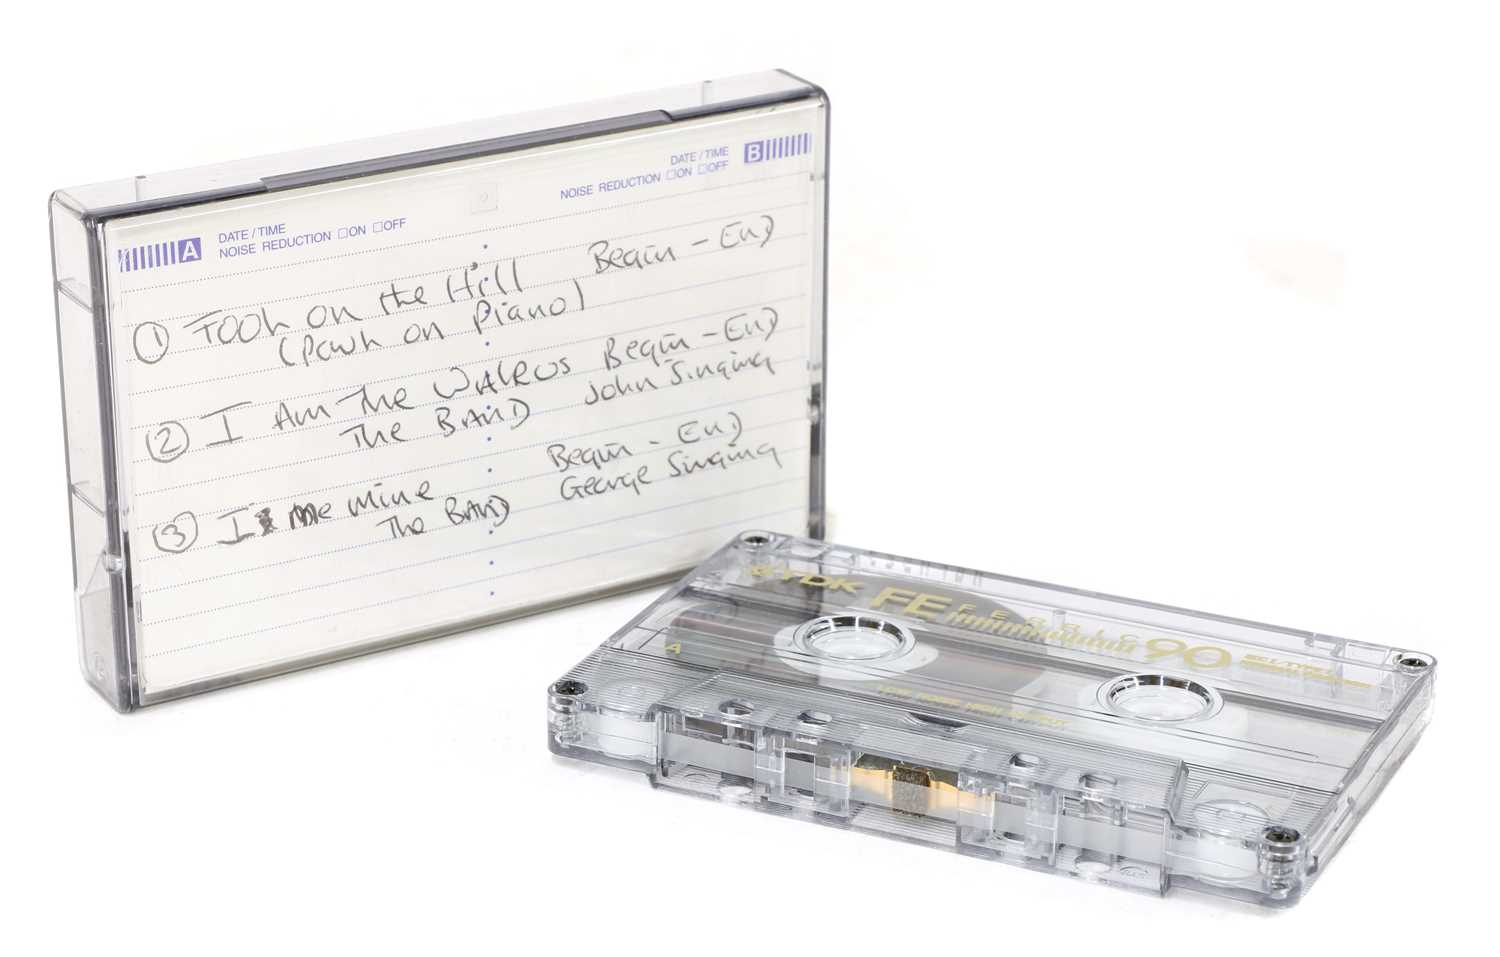 Lot 548 - The Beatles, a demo tape edit